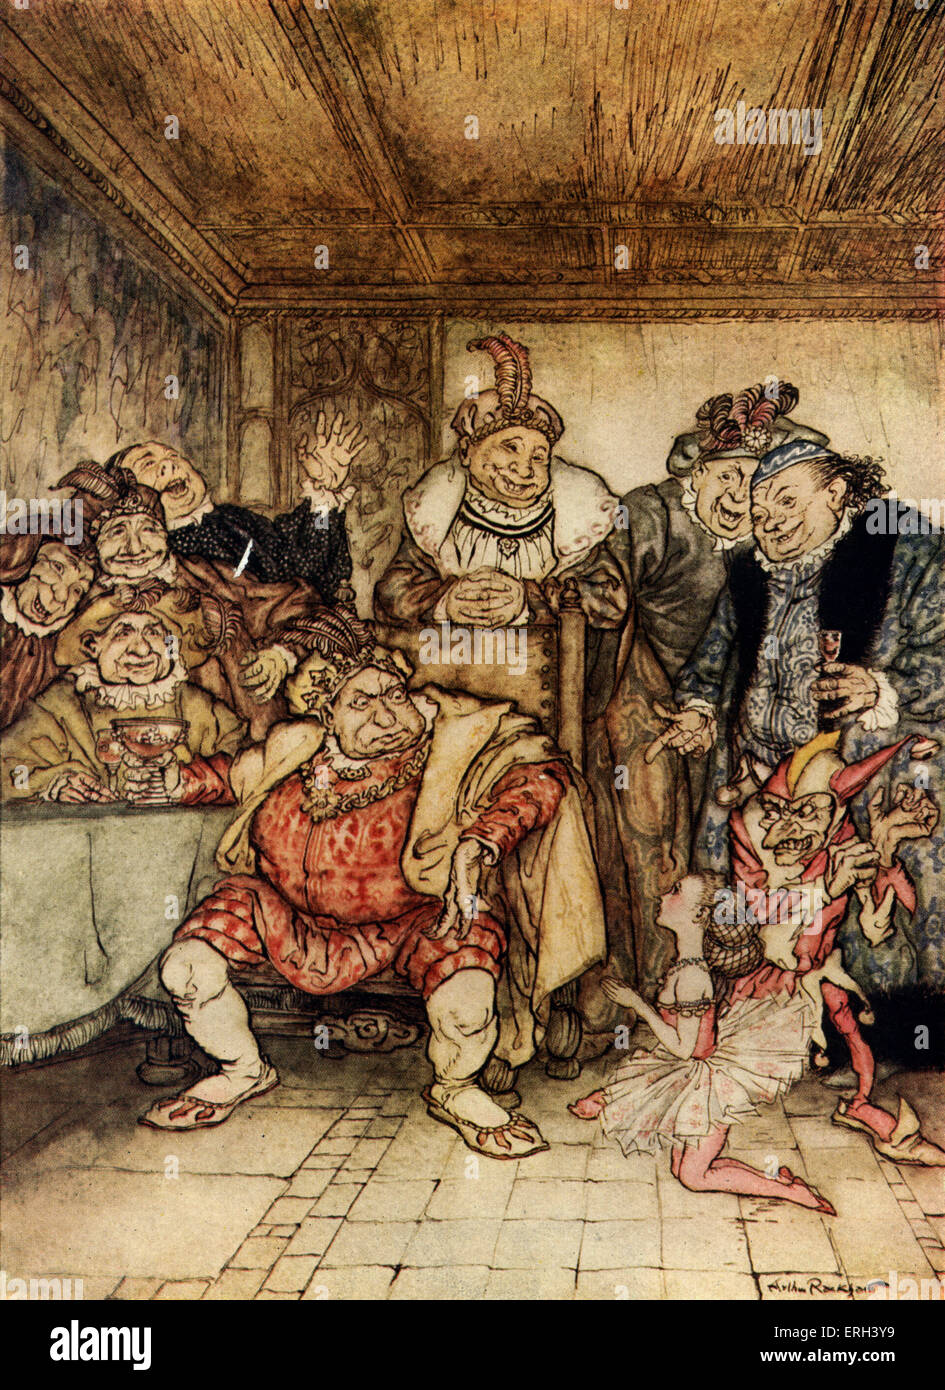 'Hop-Frog' by Edgar Allan Poe.  The court entertainer, Tripetta, begs the king to stop tormenting the jester, - Stock Image